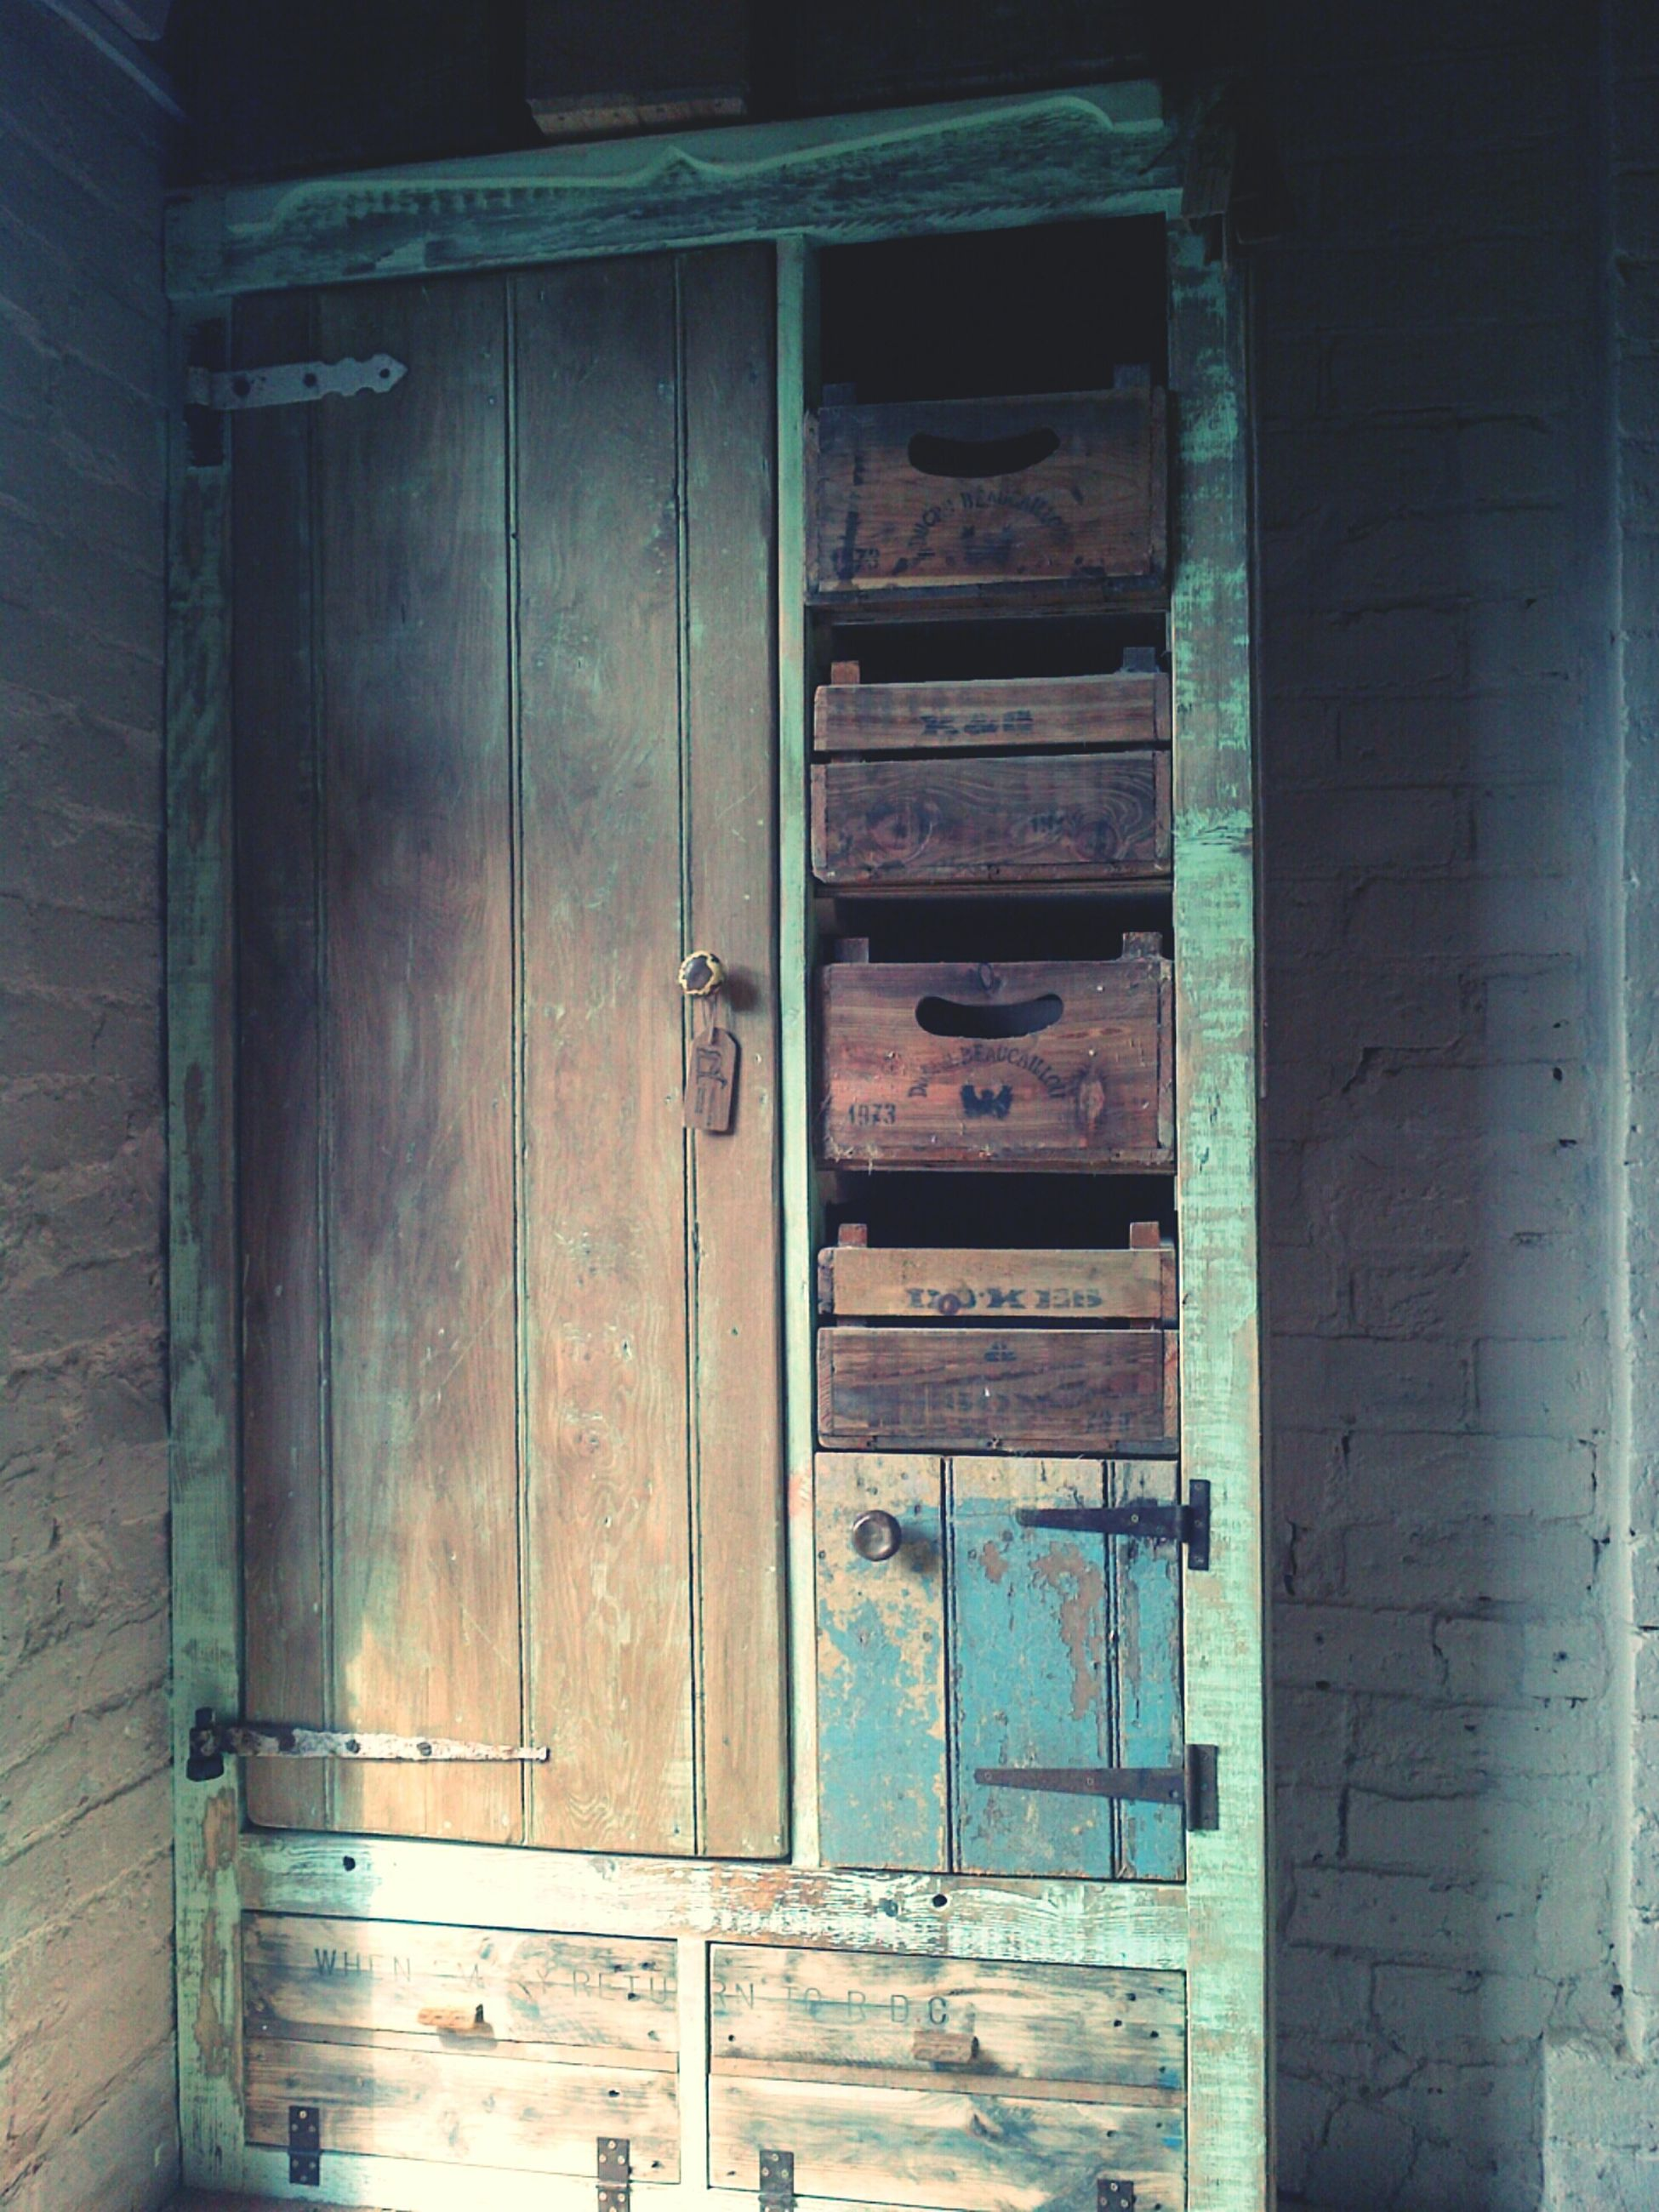 built structure, architecture, door, building exterior, abandoned, old, closed, wood - material, house, weathered, obsolete, run-down, damaged, deterioration, entrance, wooden, window, bad condition, safety, doorway